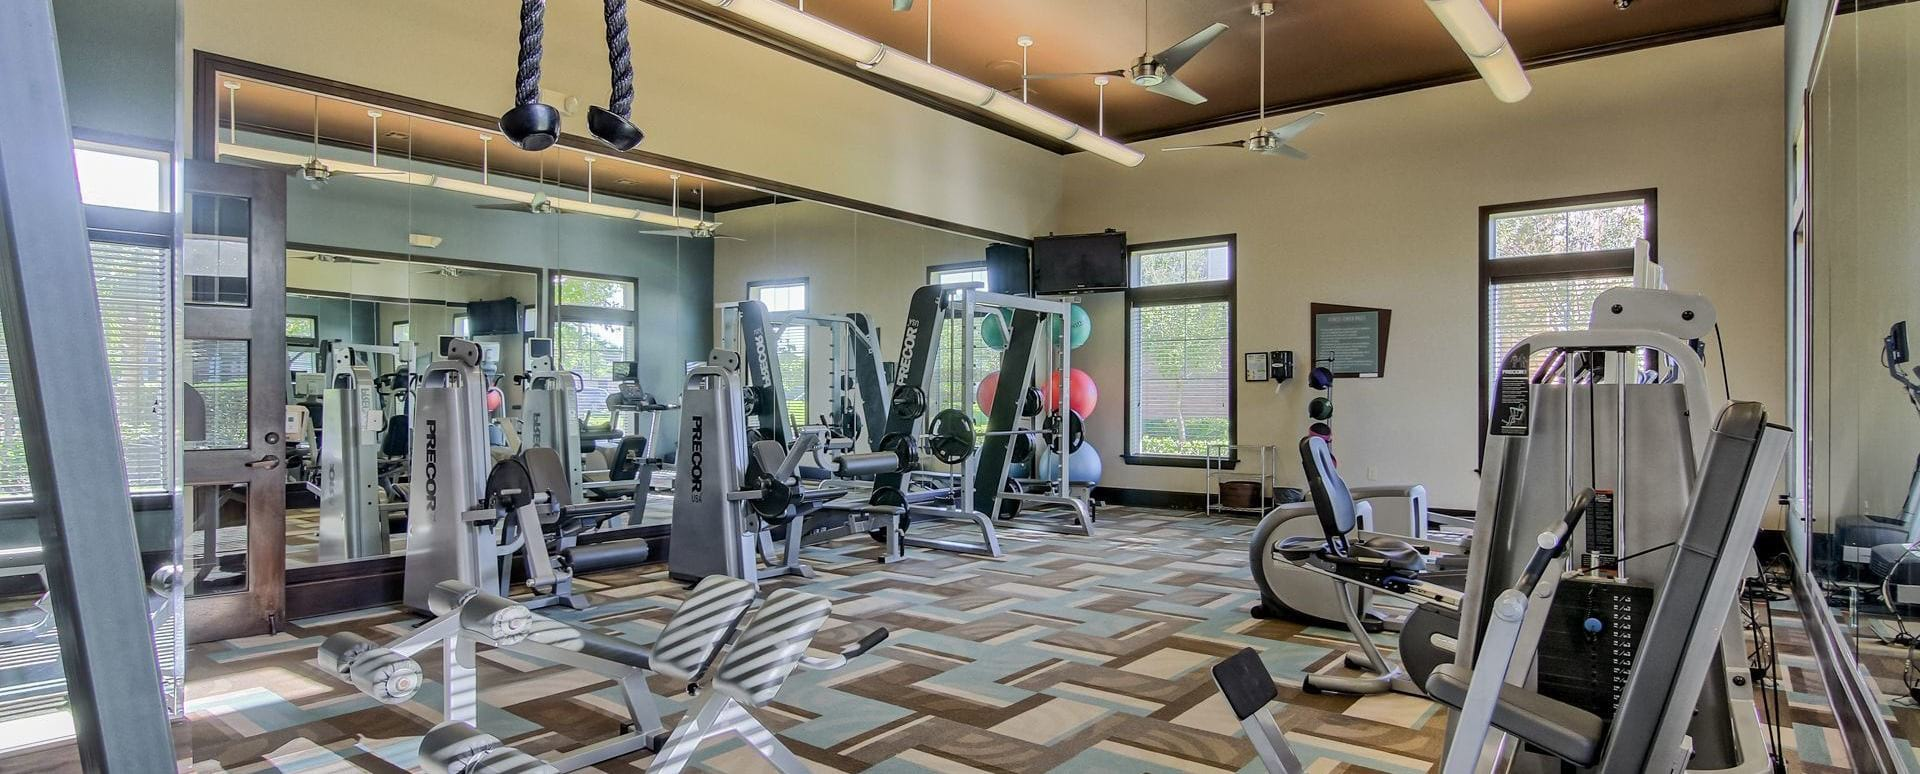 fitness center with ceiling fans and abundant lighting